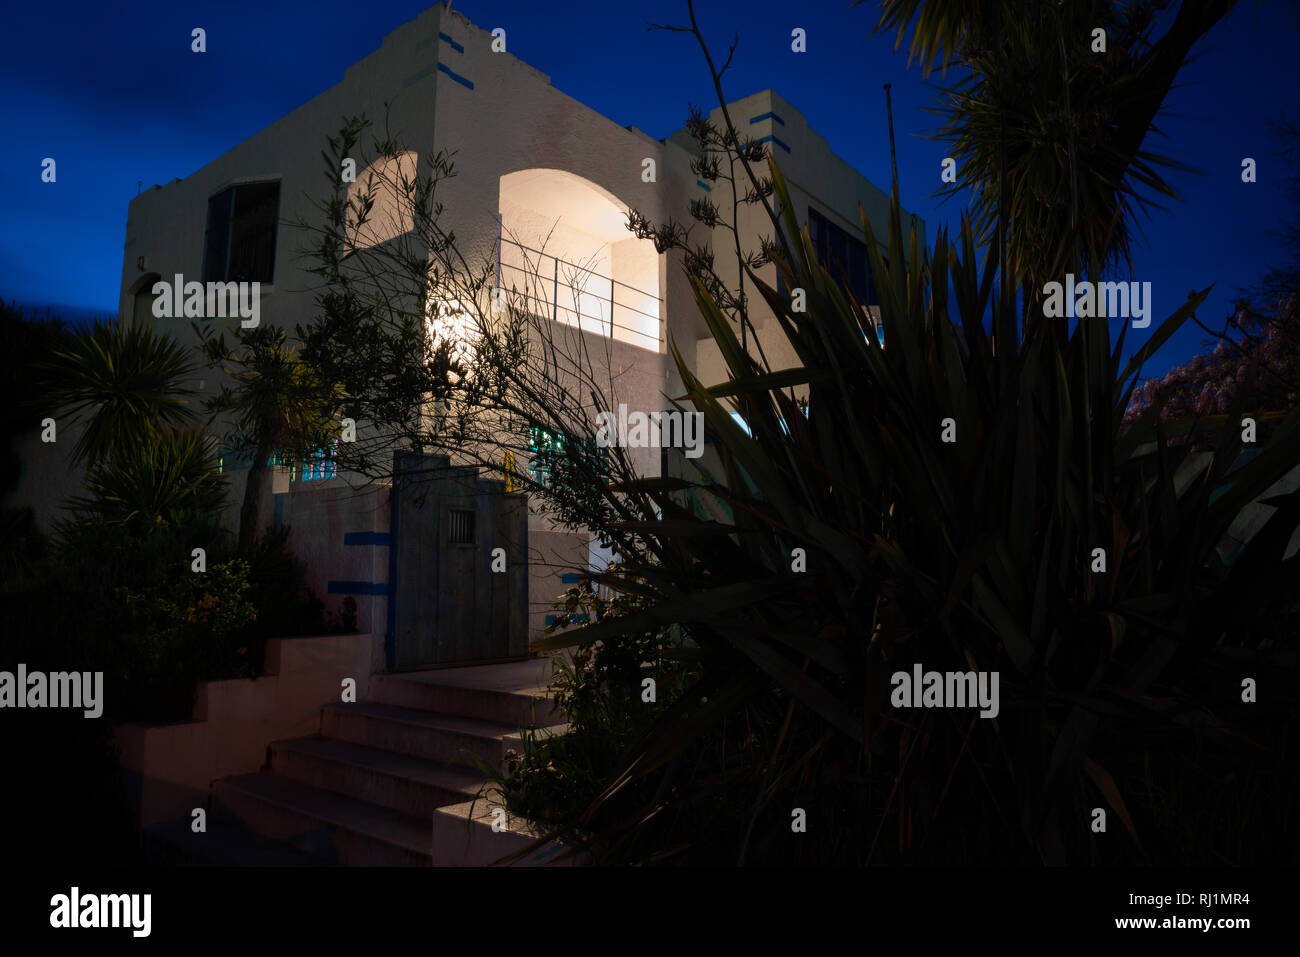 Deco style house spooky in darkness of night from street - Stock Image